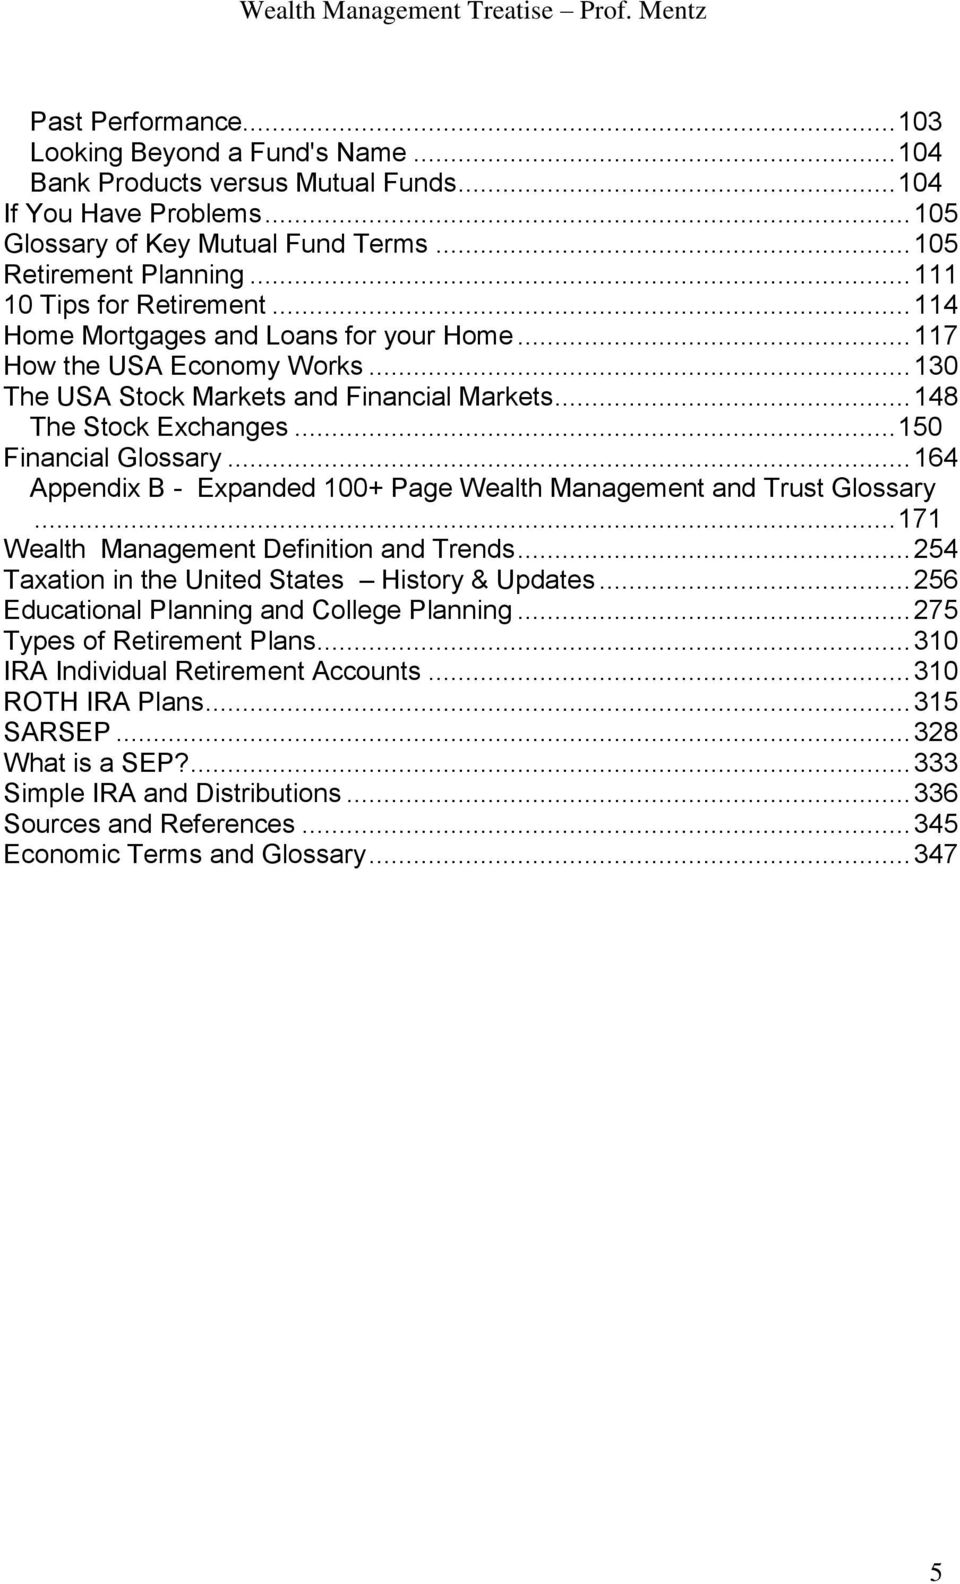 .. 150 Financial Glossary... 164 Appendix B - Expanded 100+ Page Wealth Management and Trust Glossary... 171 Wealth Management Definition and Trends.